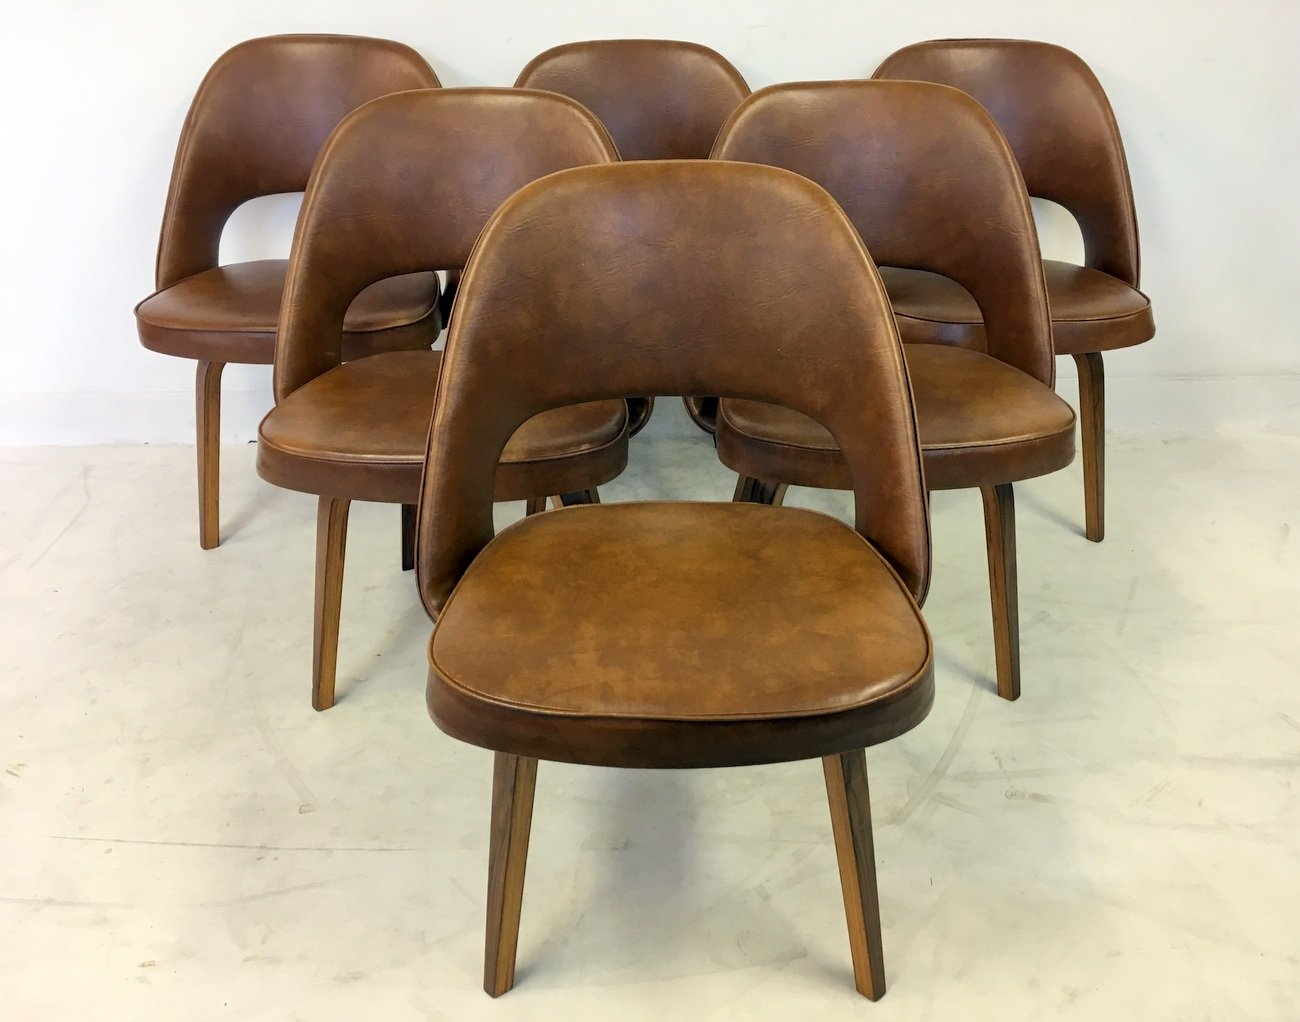 Vintage executive chairs by eero saarinen for knoll set of 6 for sale at pamono - Knoll inc chairs ...